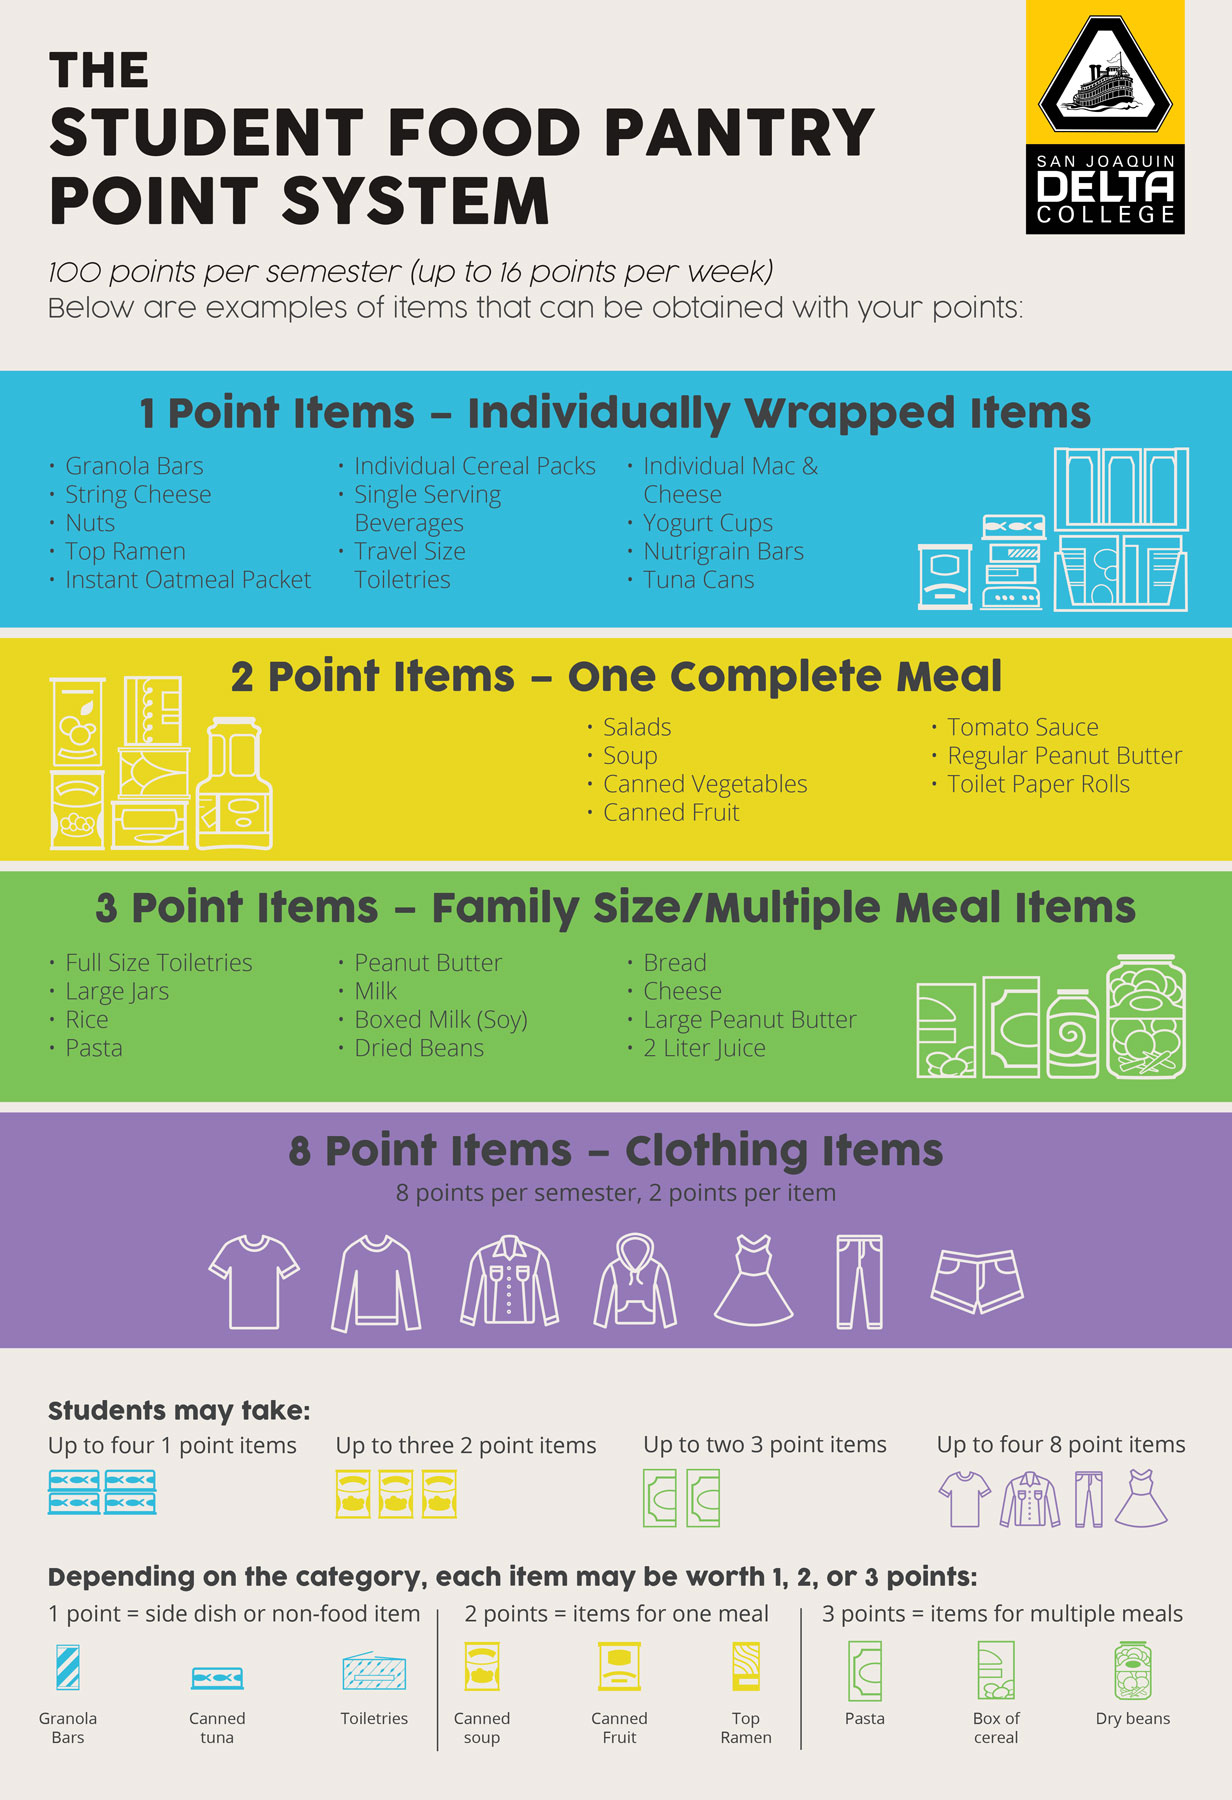 Food Pantry points system chart.